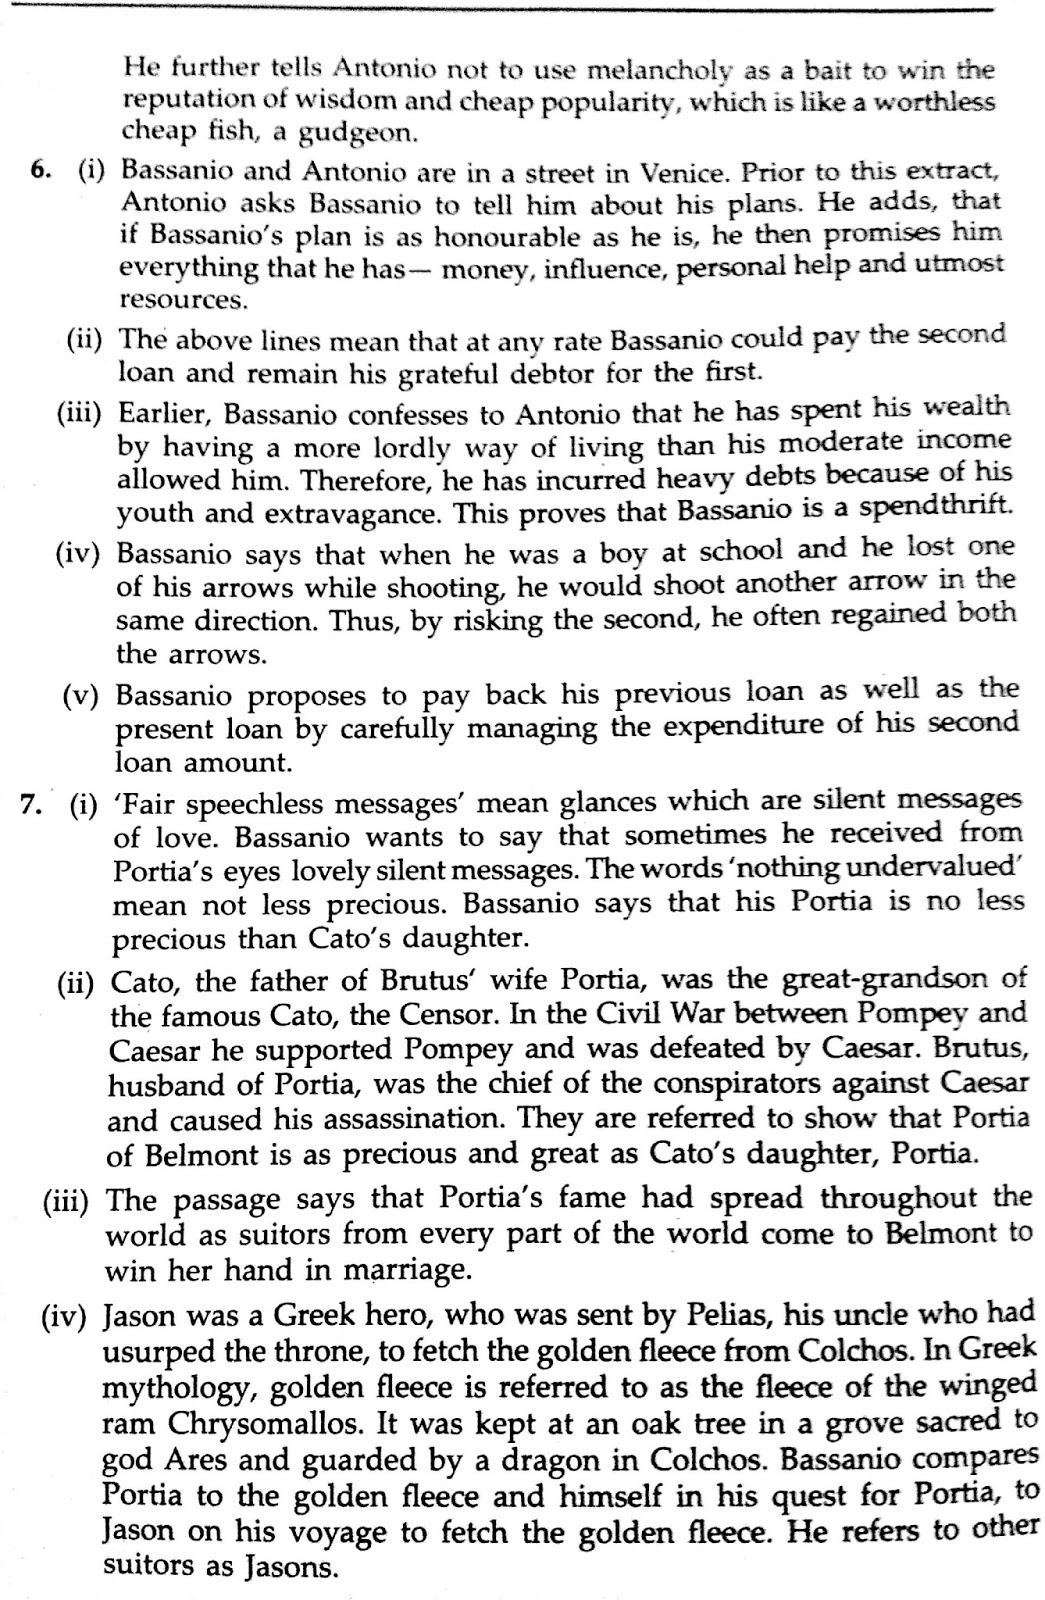 Workbook Answers/ Solutions in The Merchant of Venice, Act 1 Scene 1